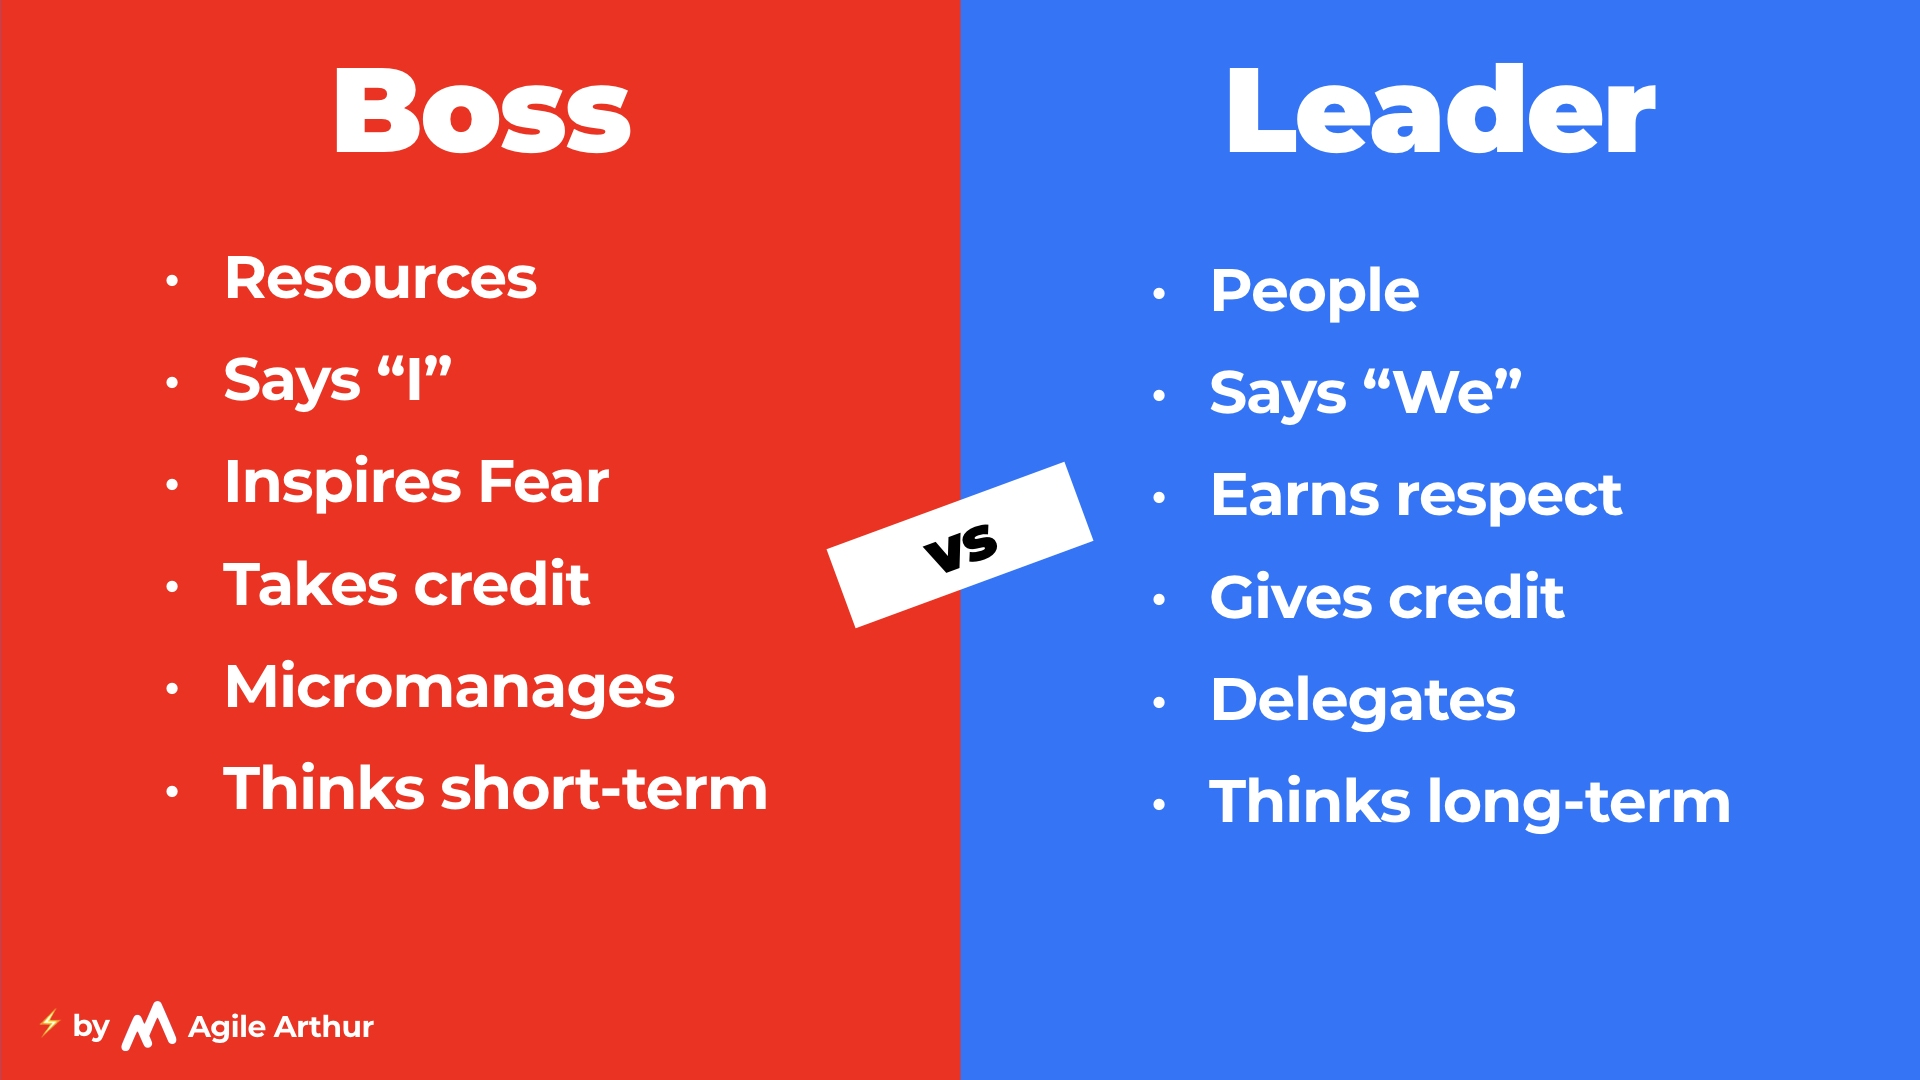 A list of differences between a boss and a leader. Left are boss examples (talks about resources, inspires fear and takes credit). Right are leader examples (talks about people, earns respect and gives credit).